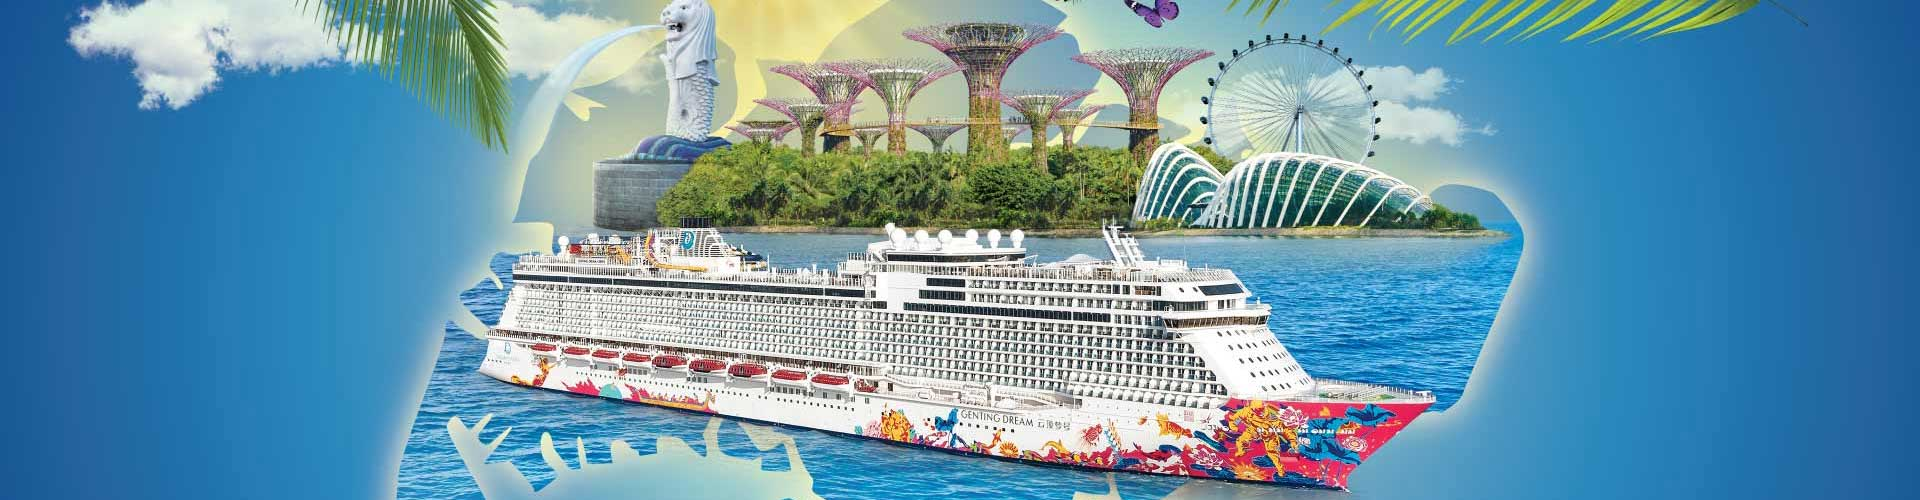 Cruises From Southampton >> Dream Cruise Packages:- Book Singapore & Hong Kong Dream Cruise Packages   DPauls Travel